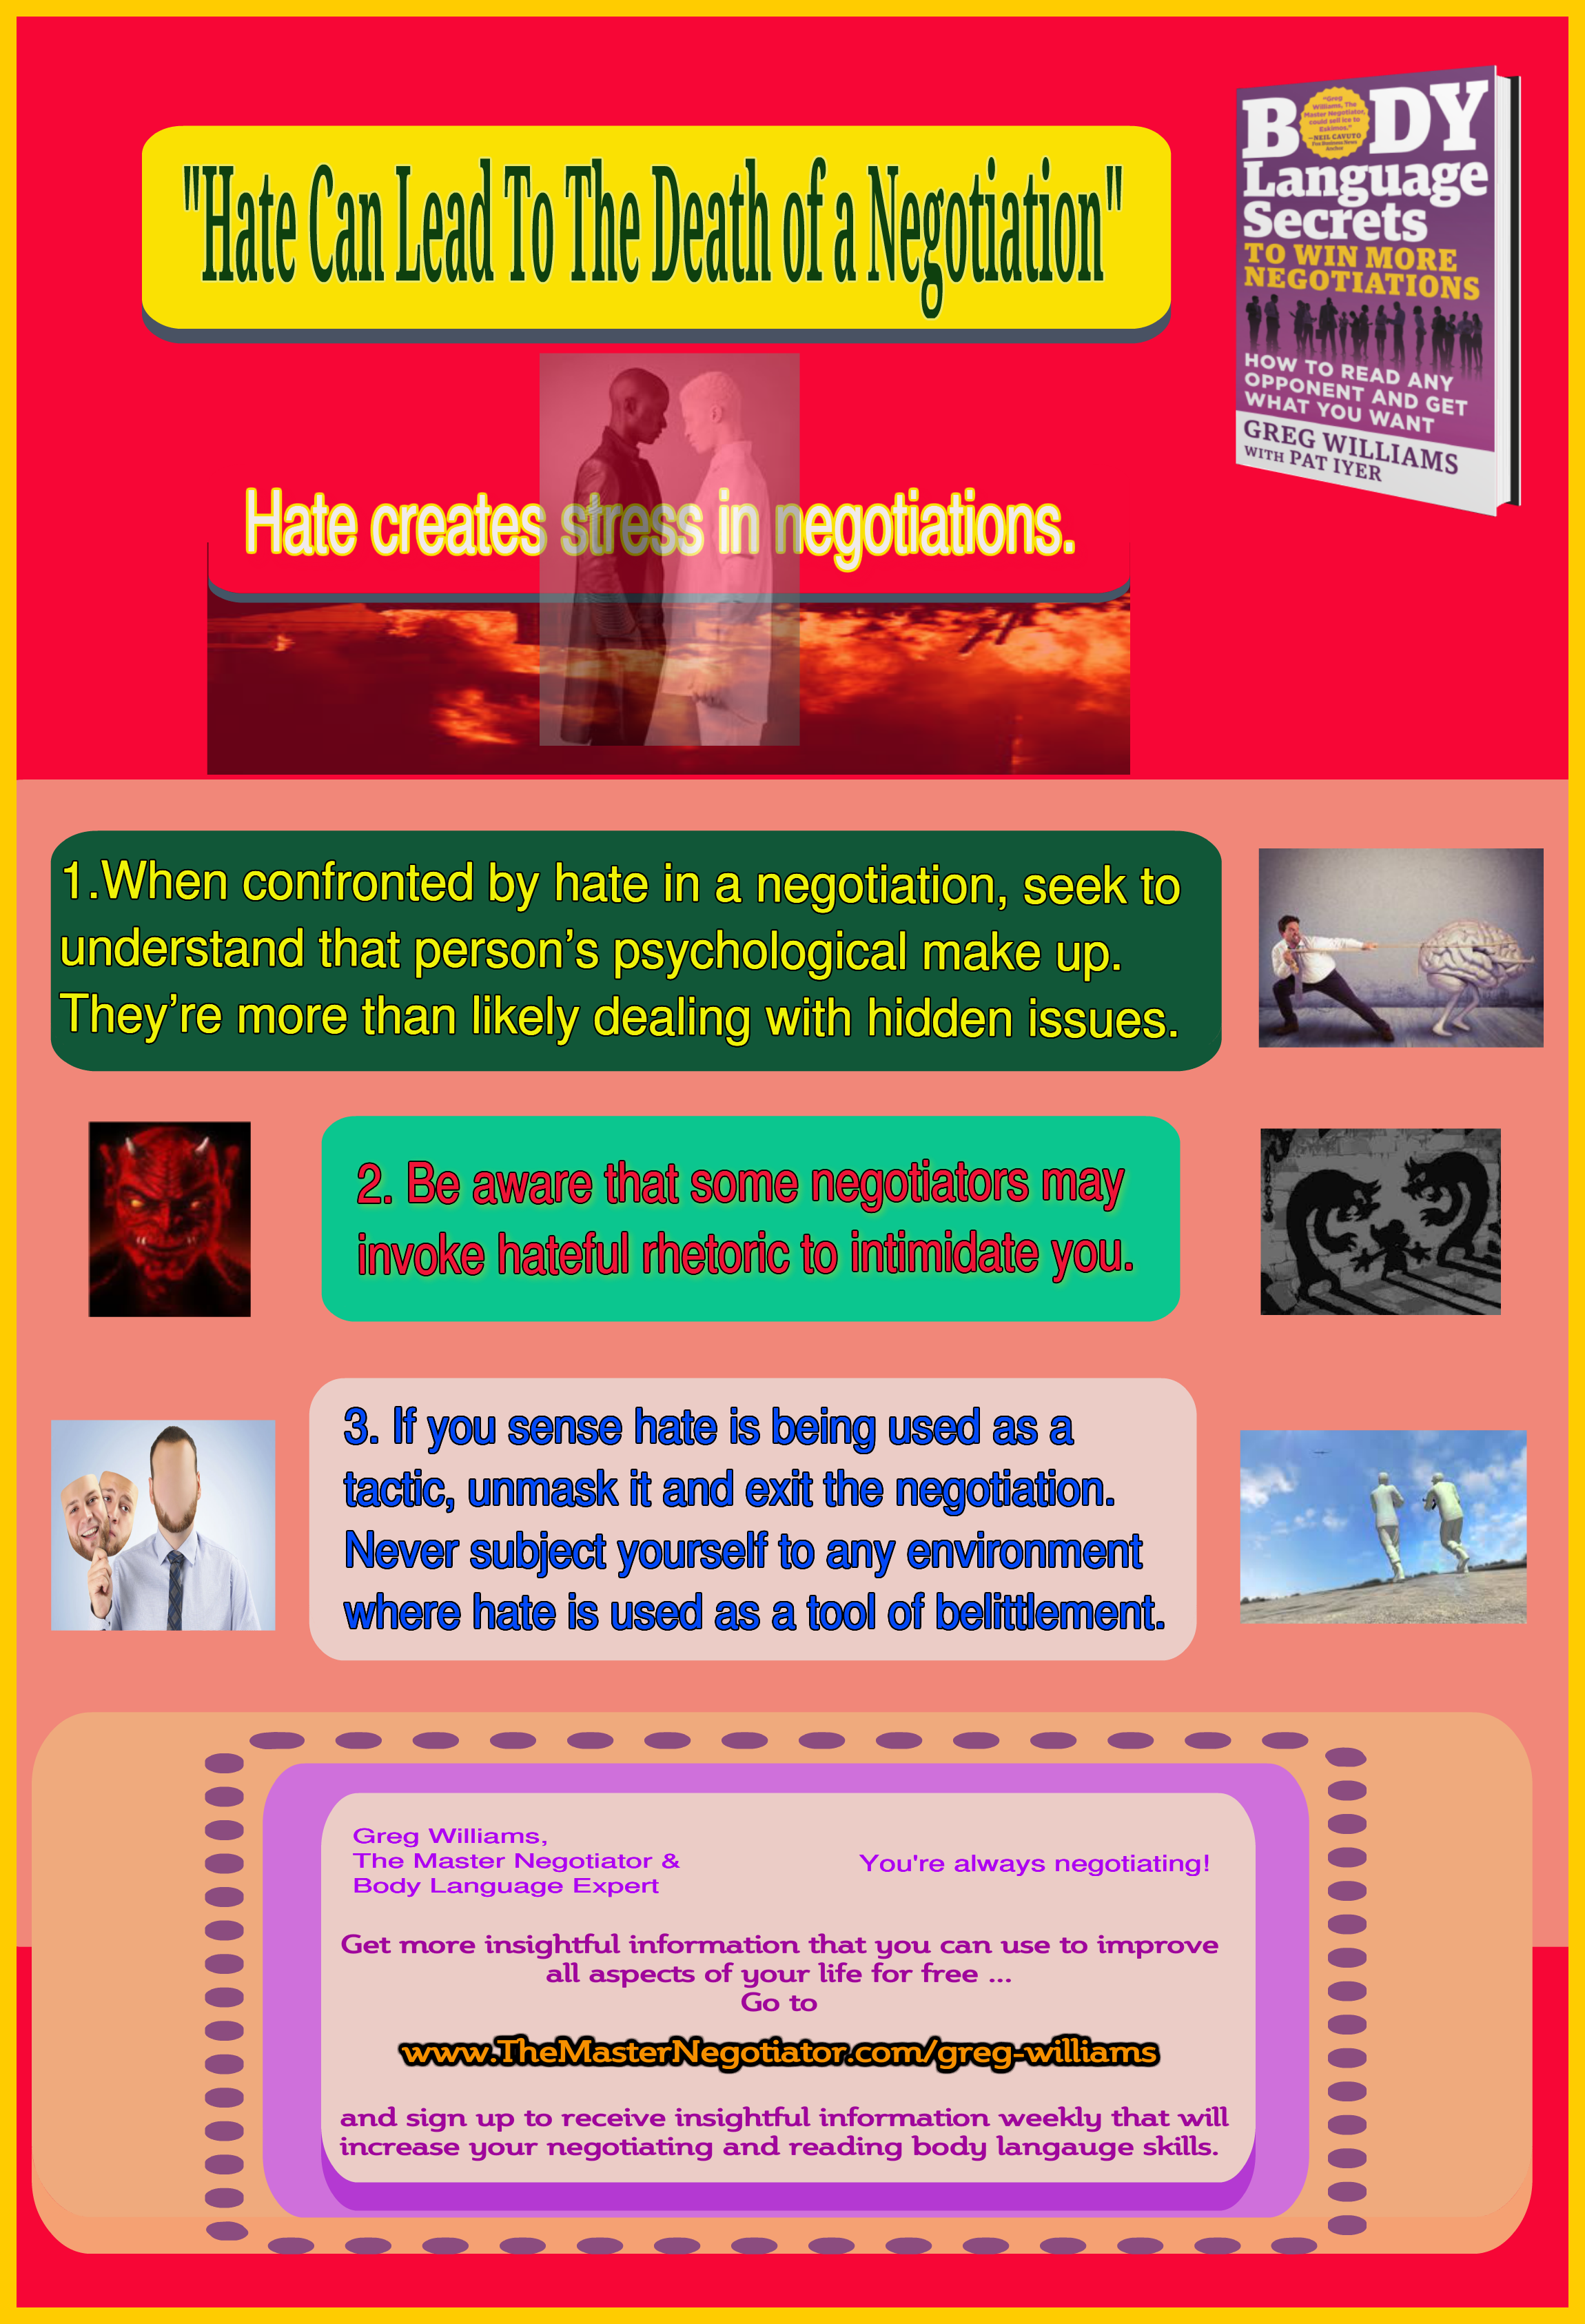 Hate Can Lead To The Death of a Negotiation